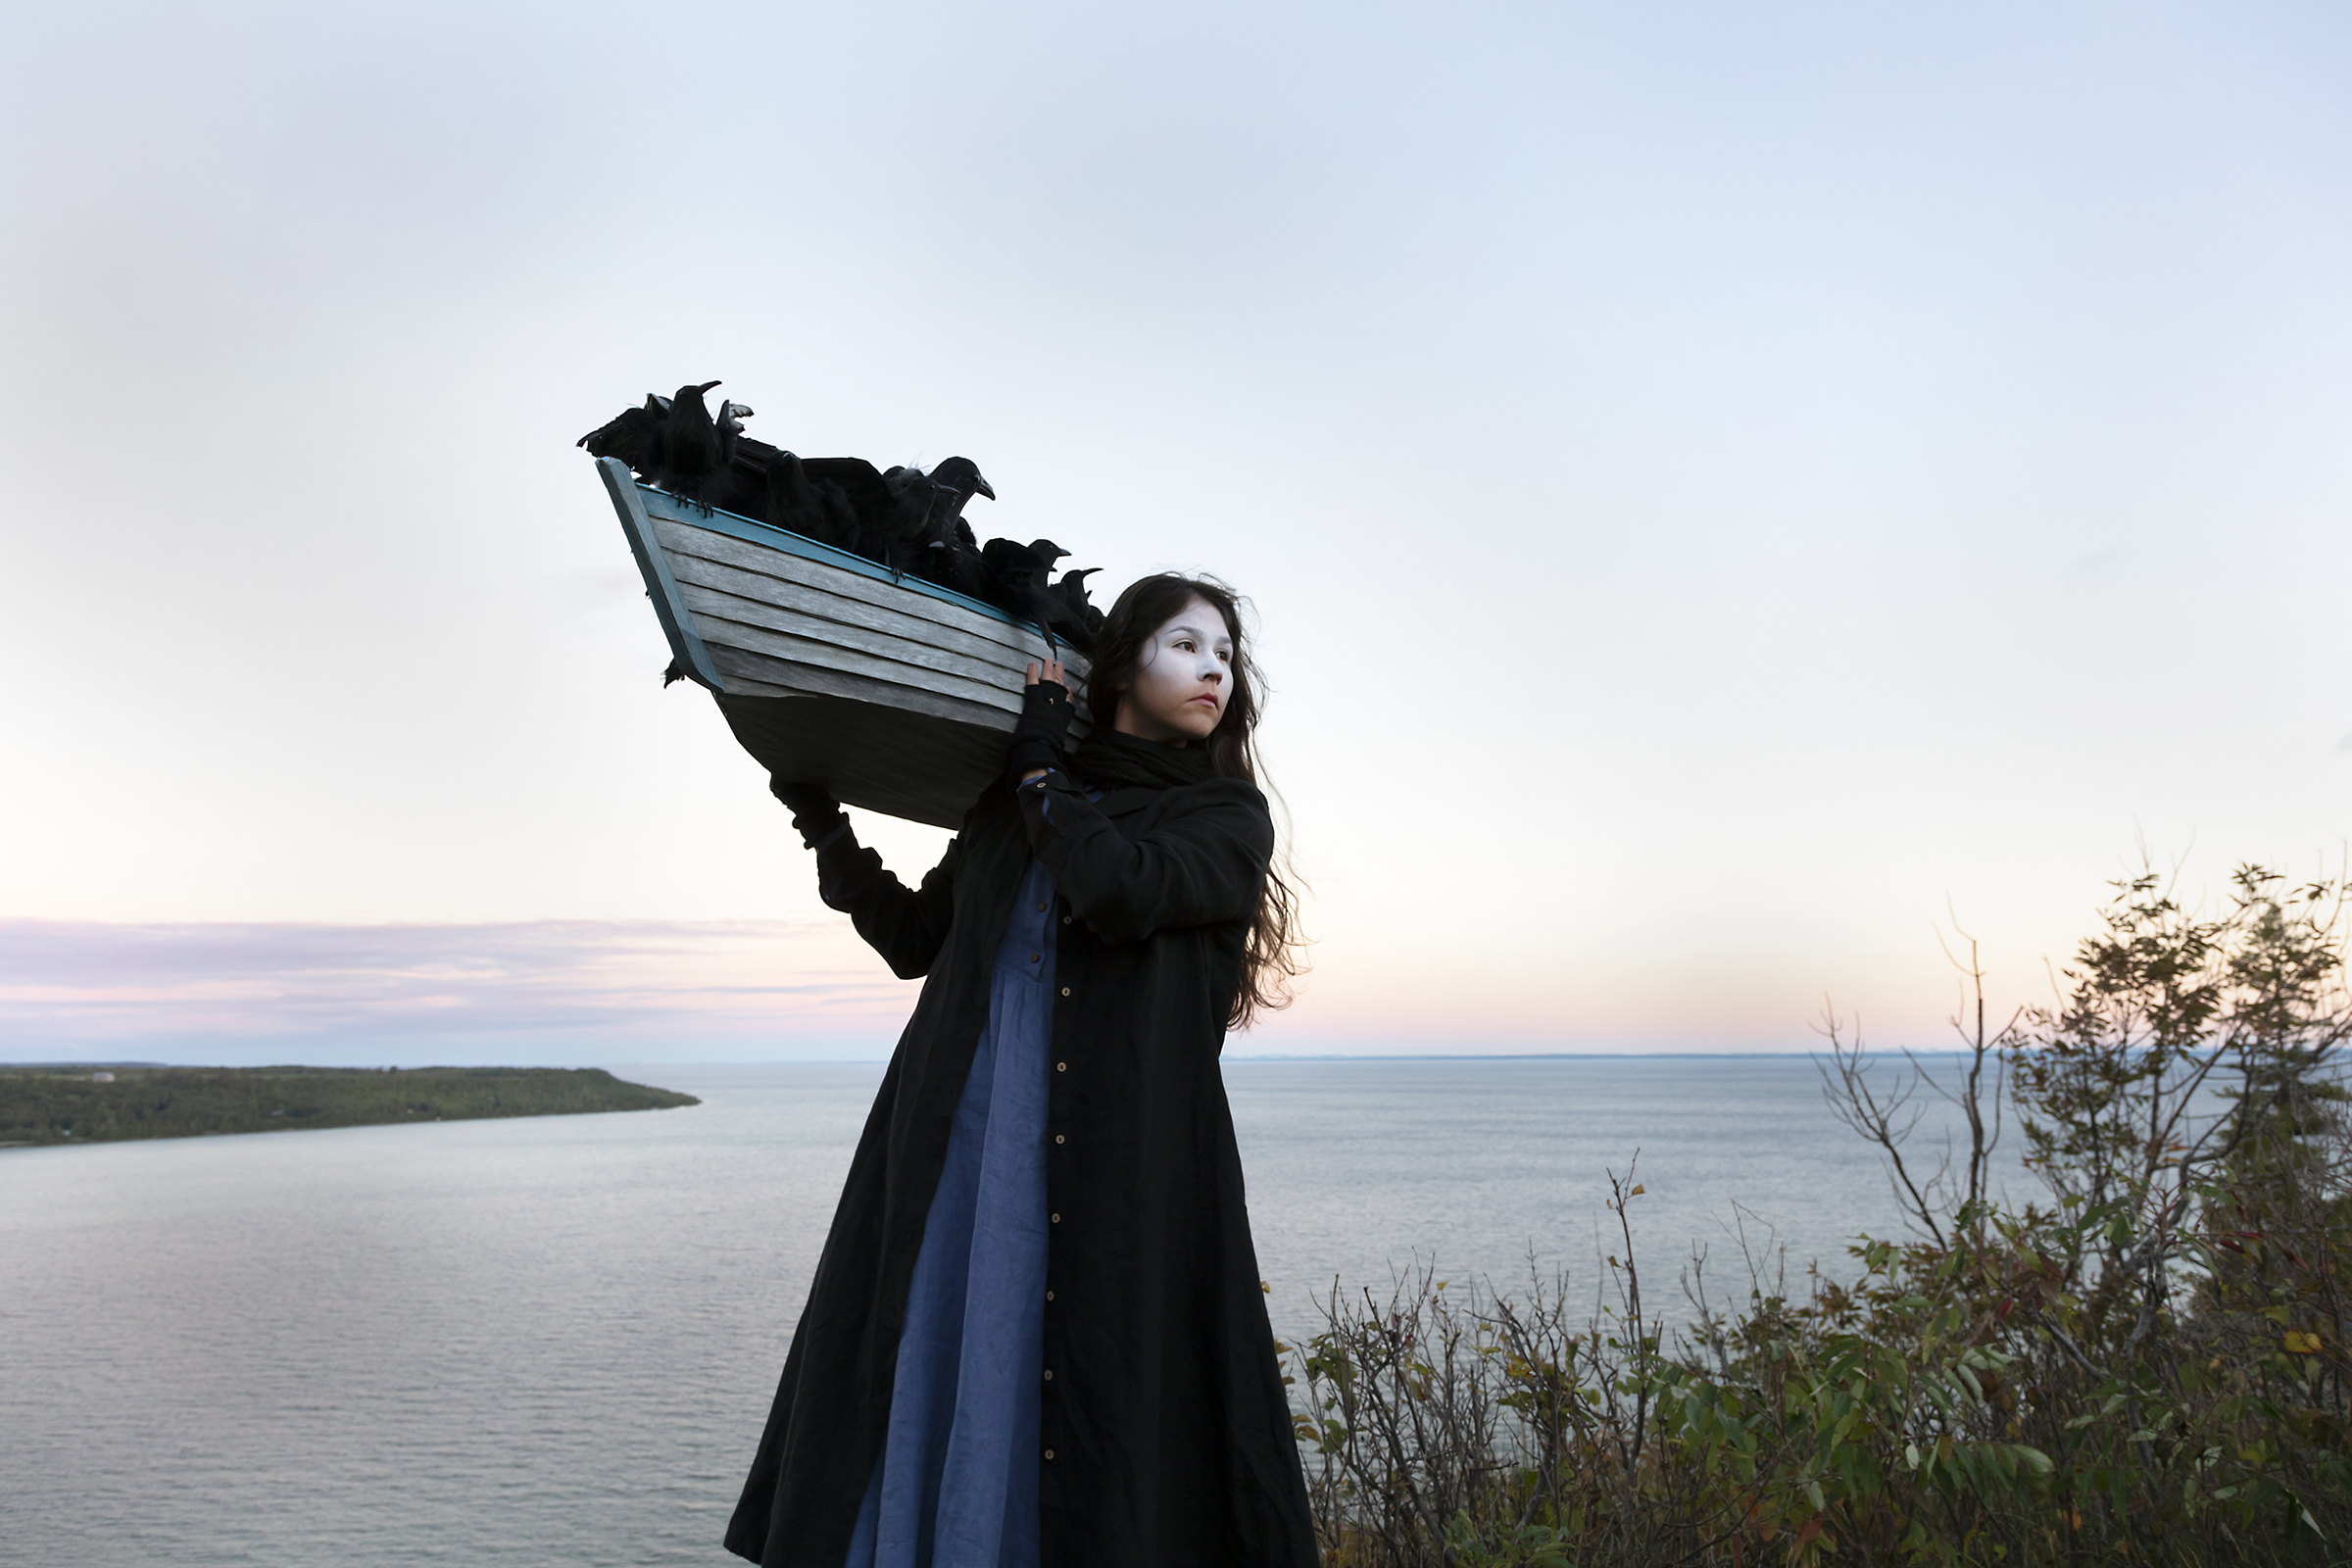 Meryl McMaster, On The Edge of This Immensity, 2019. From the series As Immense as the Sky. Courtesy of the artist, Stephen Bulger Gallery and Pierre-François Ouellette art contemporain.